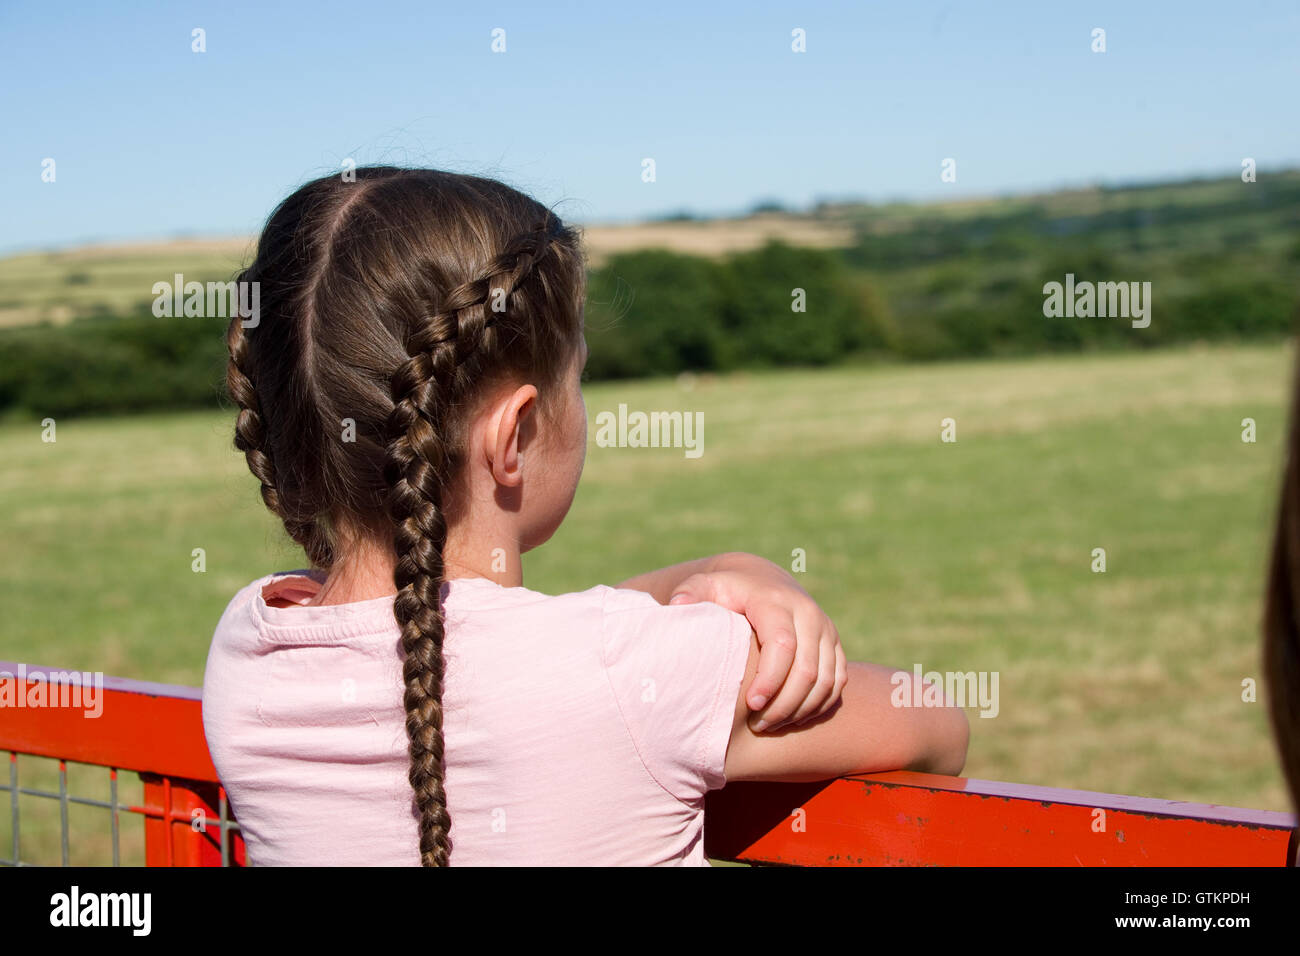 small child looking at view - Stock Image